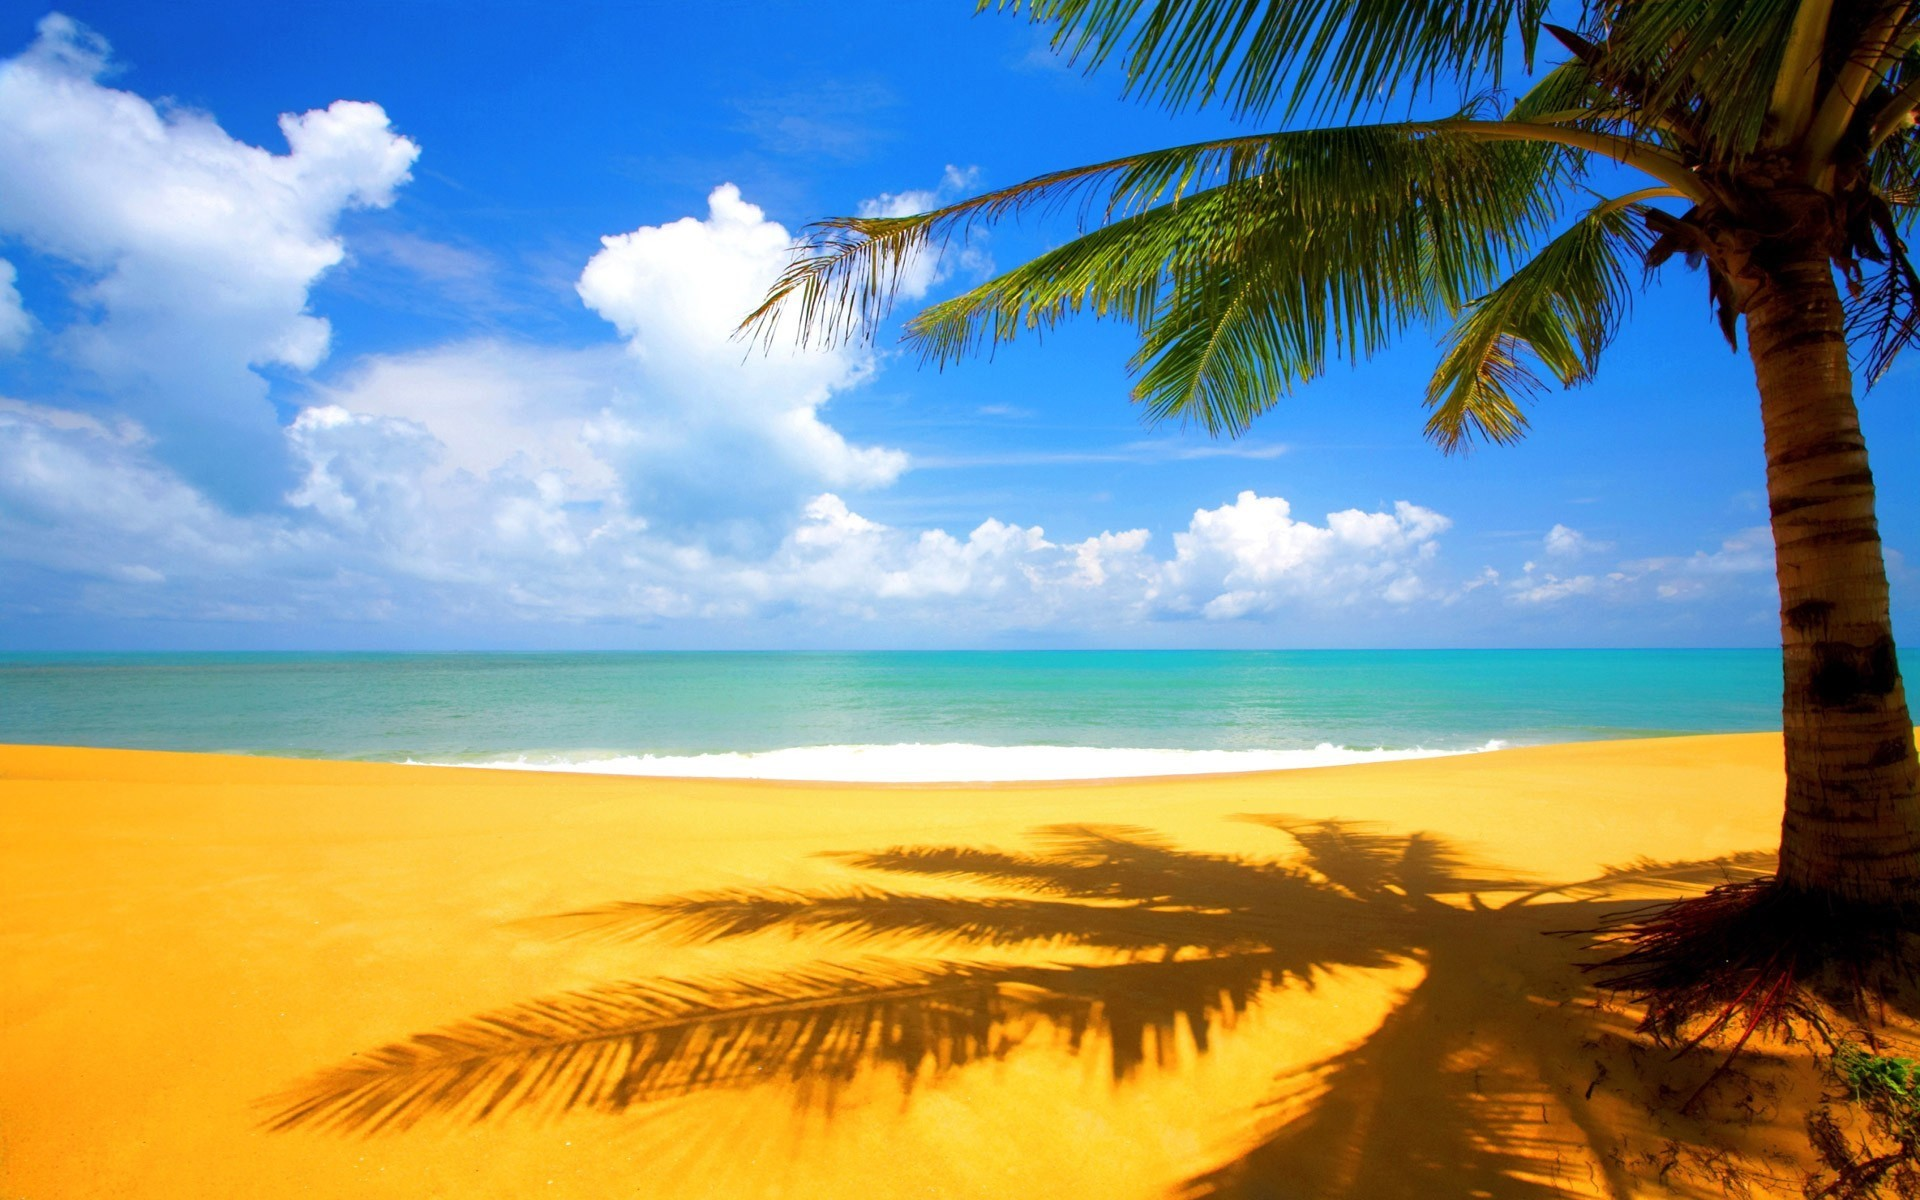 1920x1200 caribbean-beach-pic-1080p-high-quality-caribbean-beach-